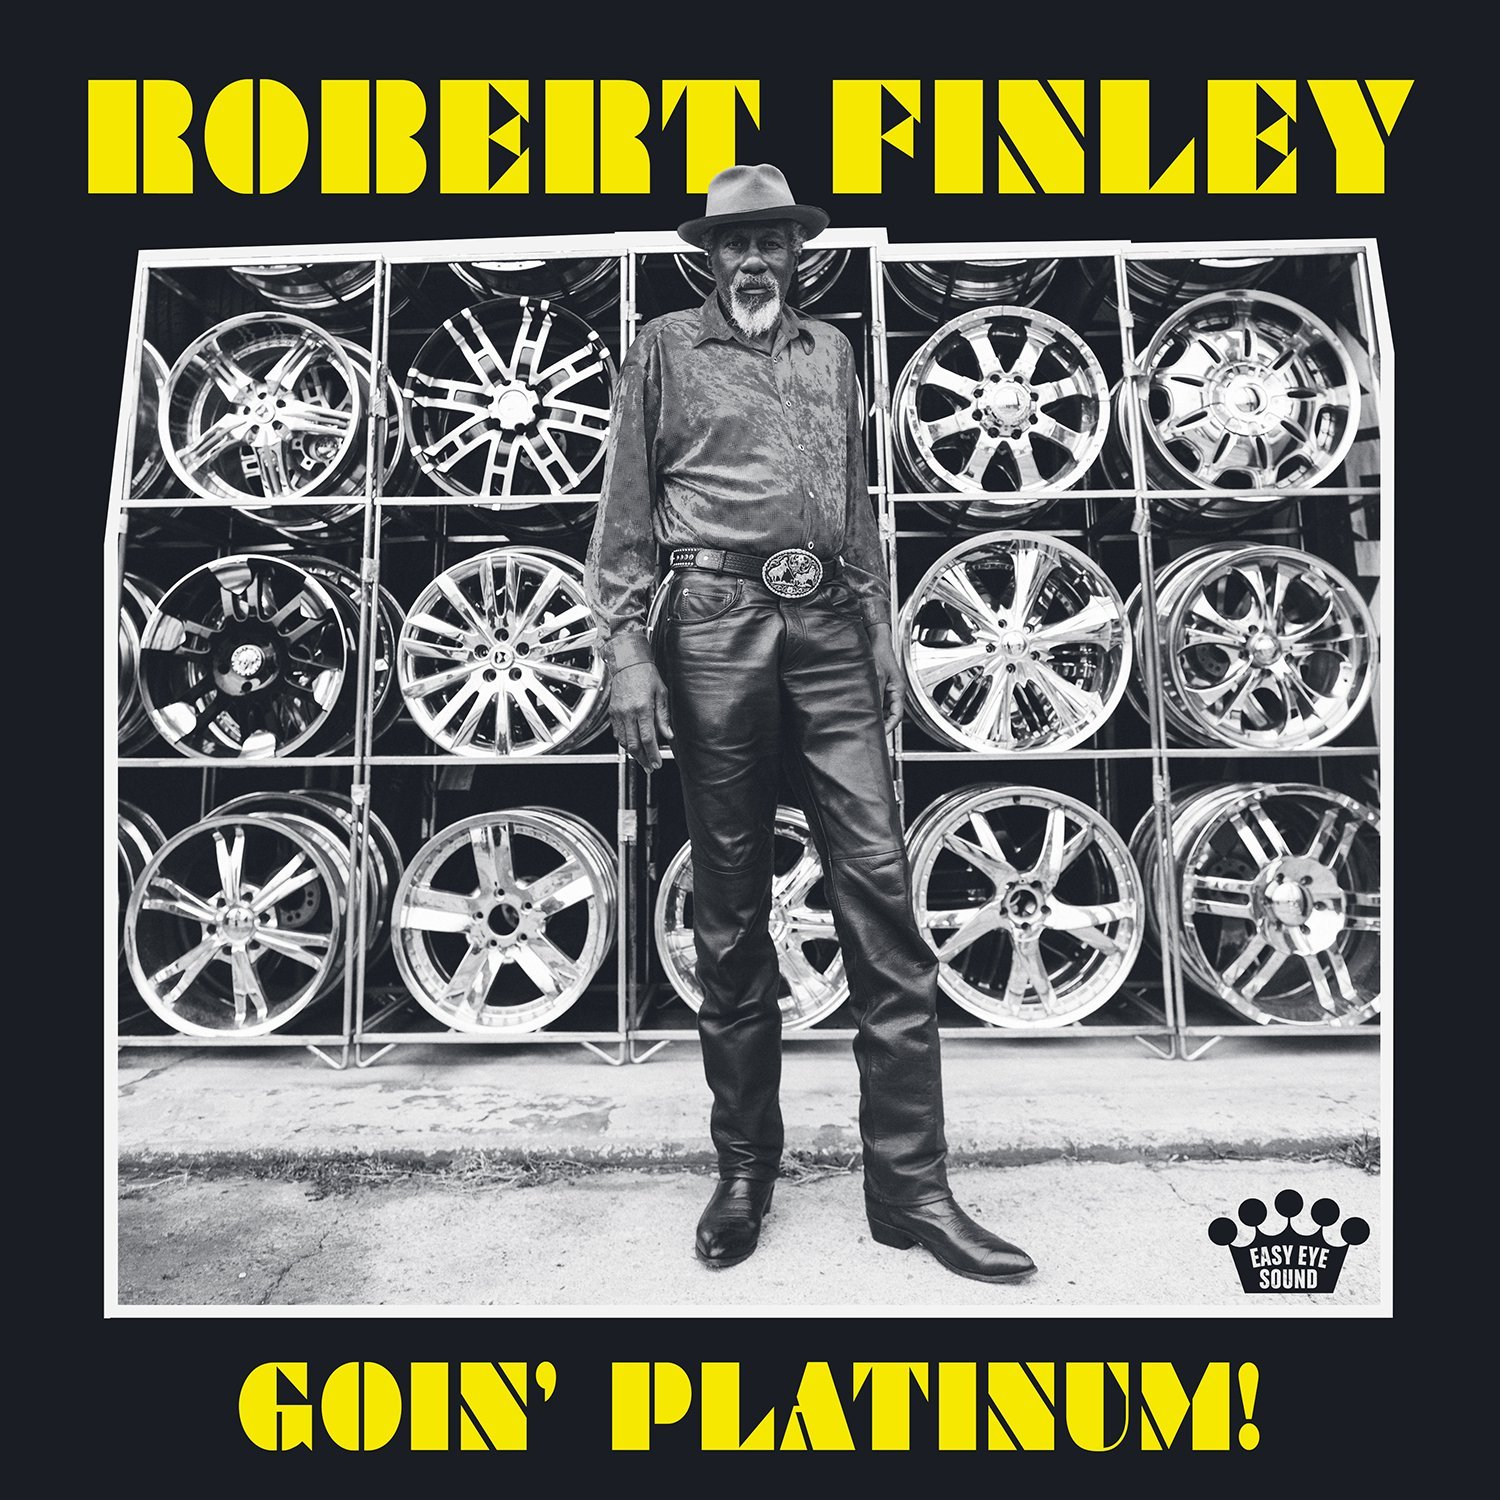 Robert Finley - Goin' Platinum [LP]